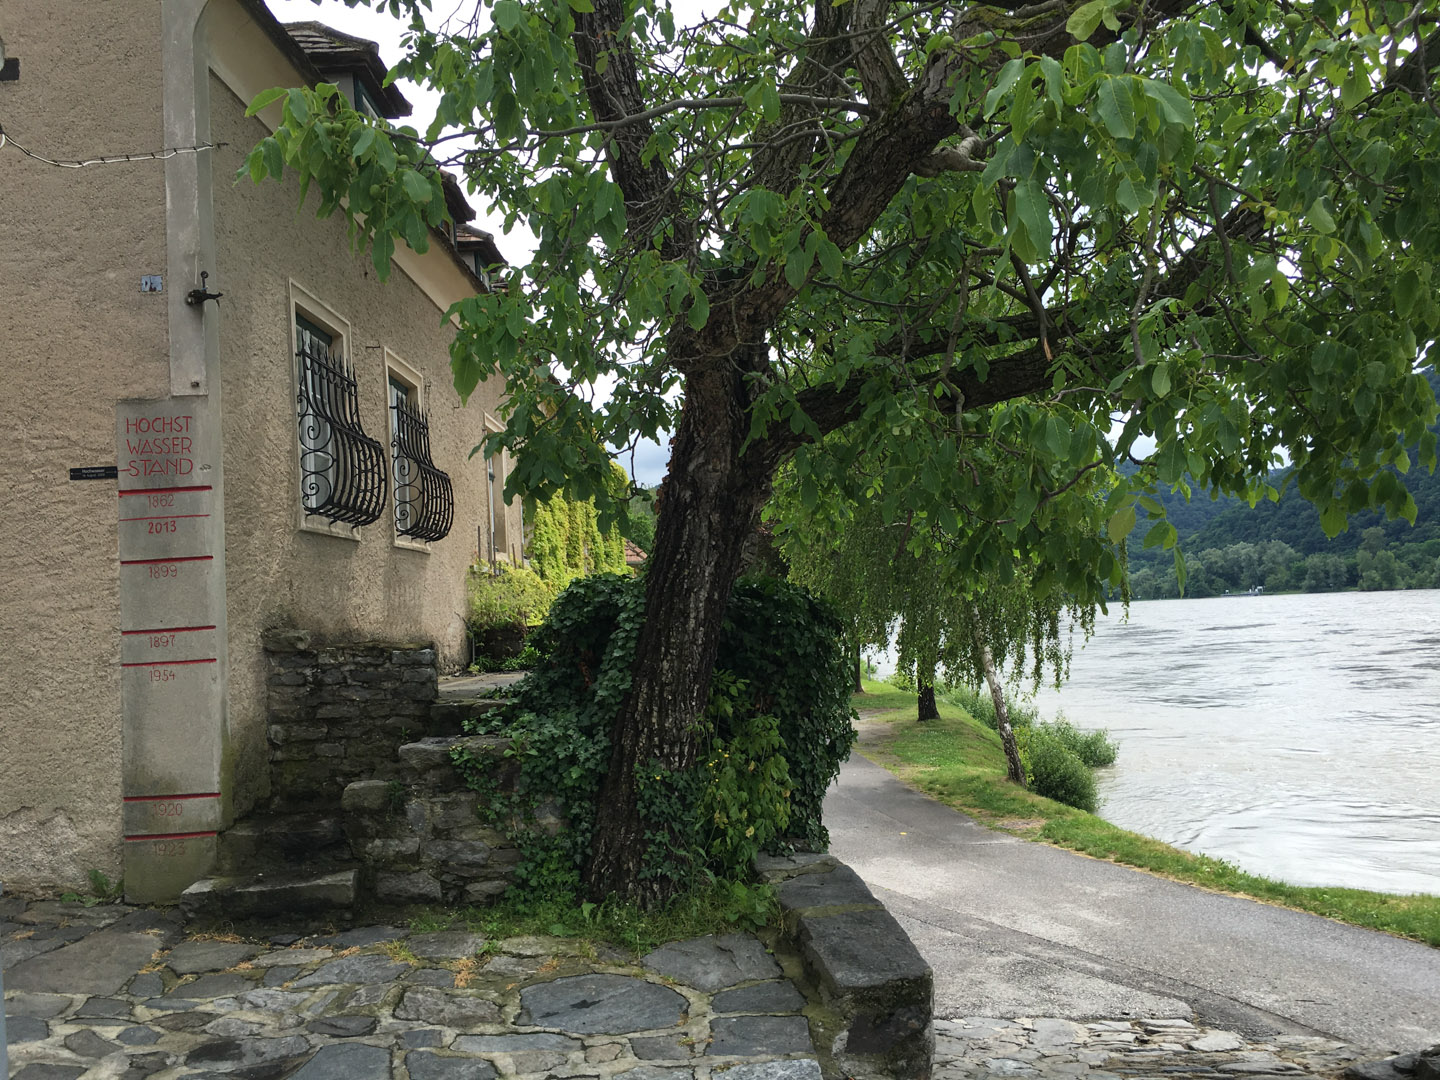 Durnstein on the banks of the Rhine